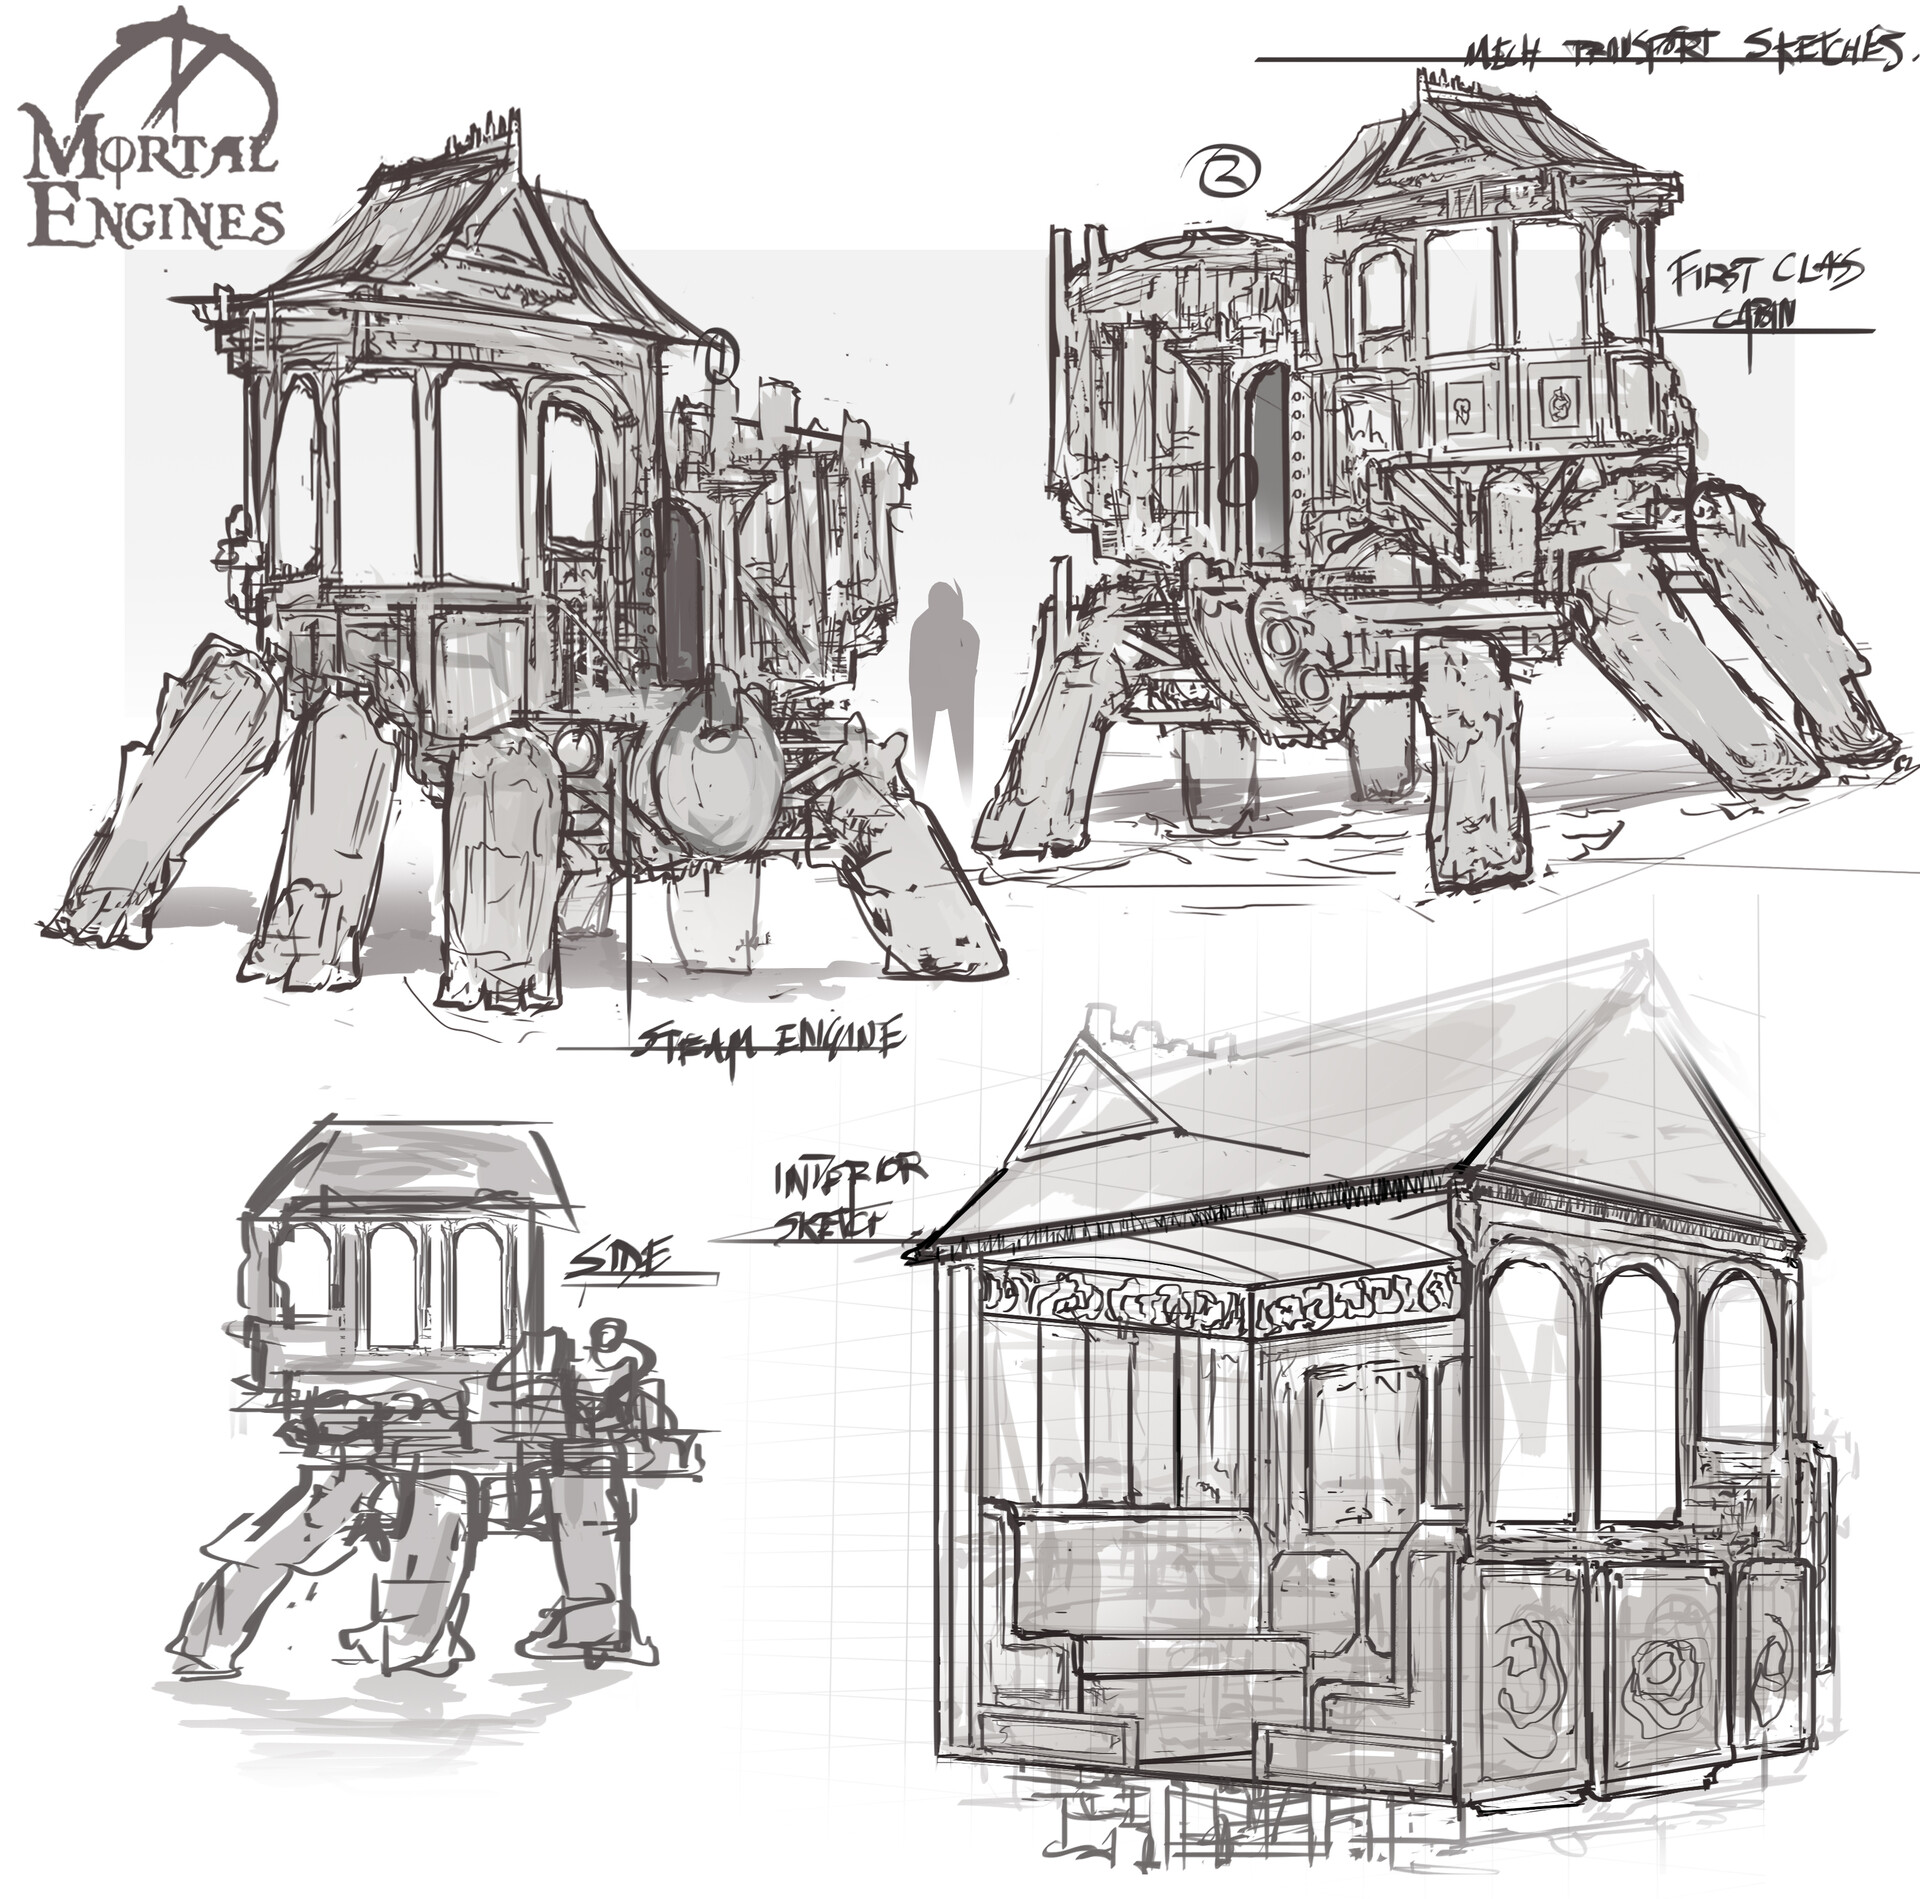 Sketches of some steampunk style mech caravans. Terrain in the town would be too unstable and unbalanced for wheels so had to be fitted with alternative.